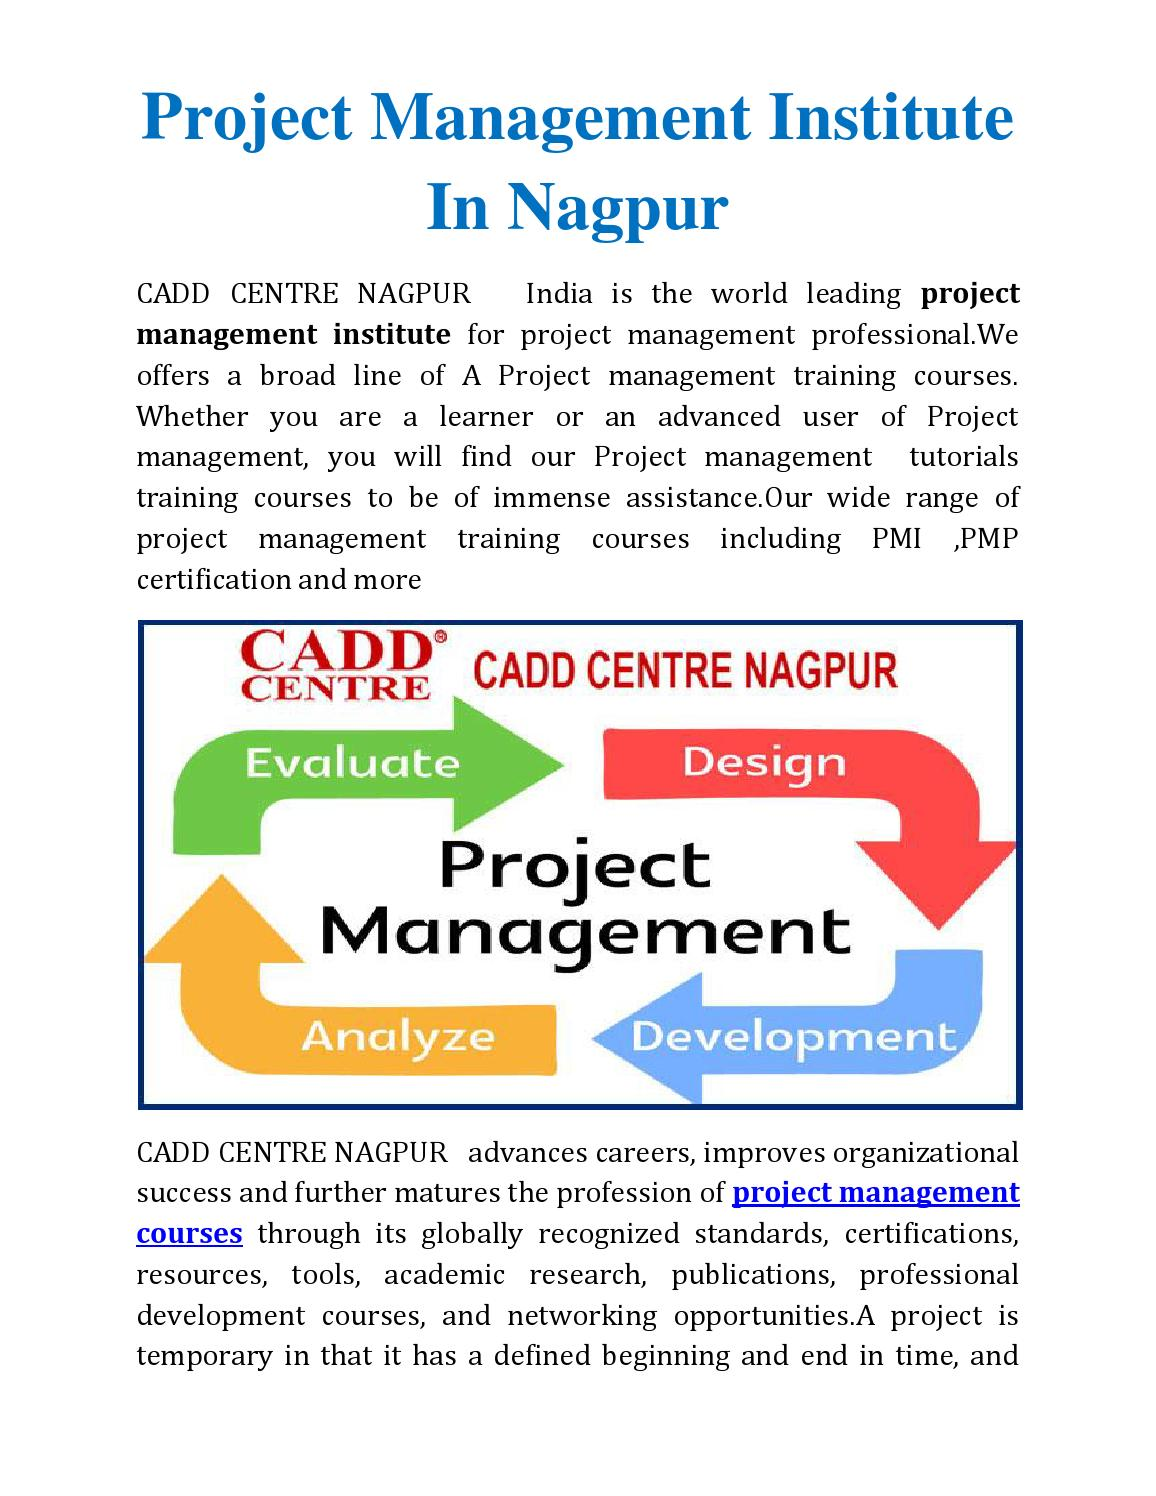 Project Management Institute In Nagpur By Caddcentrengp Issuu